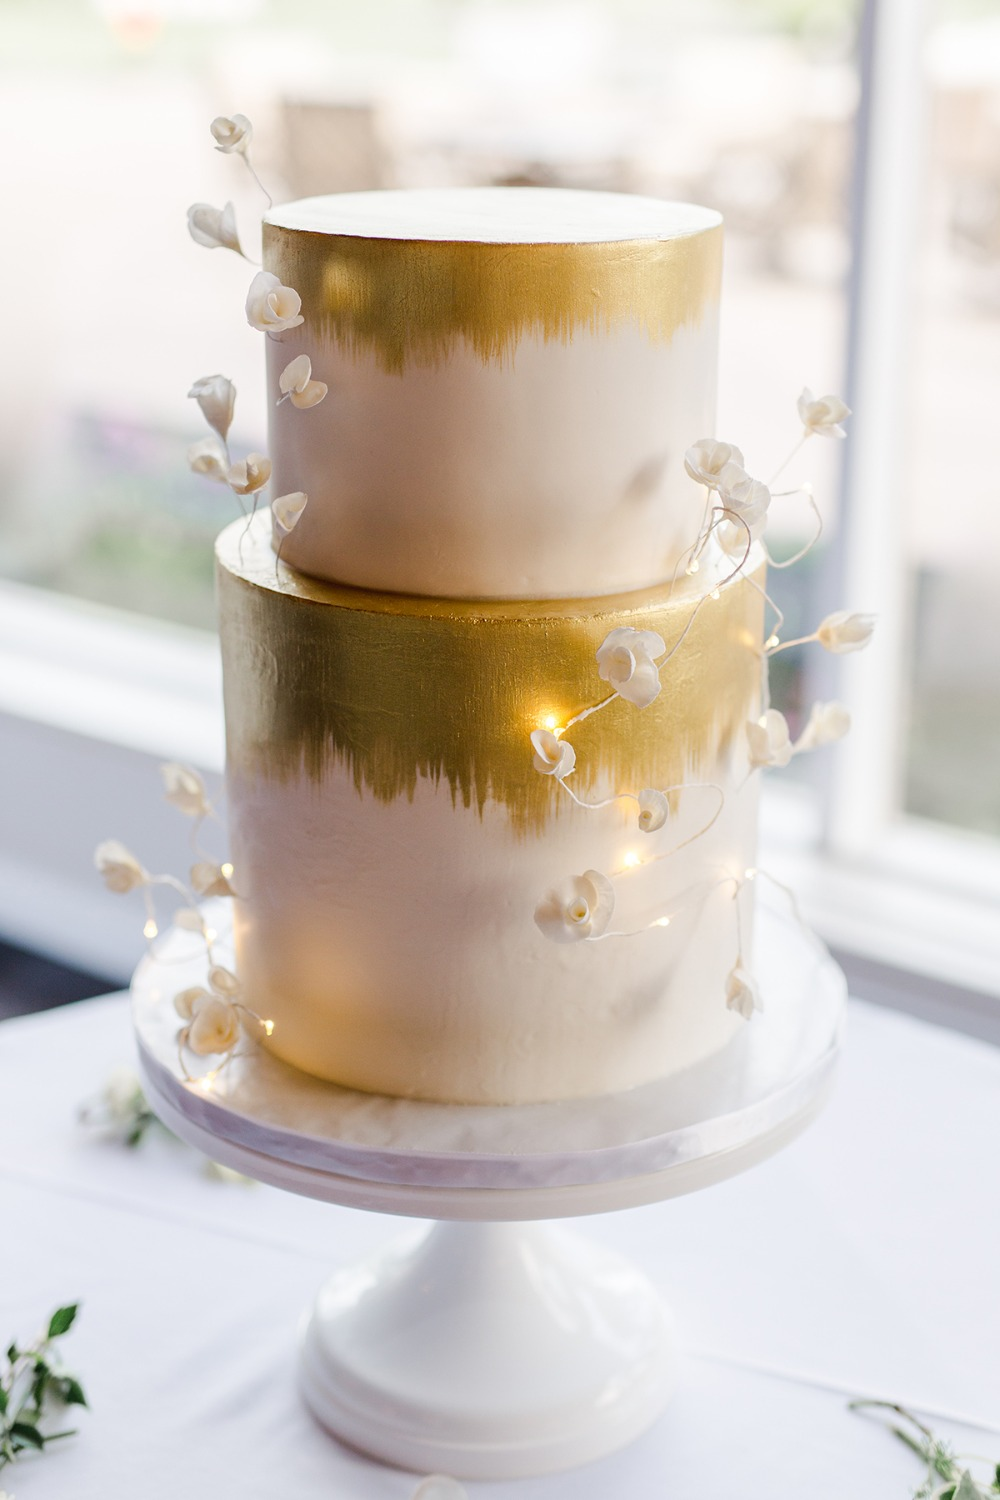 gold leaf painted cake with fairylight accents